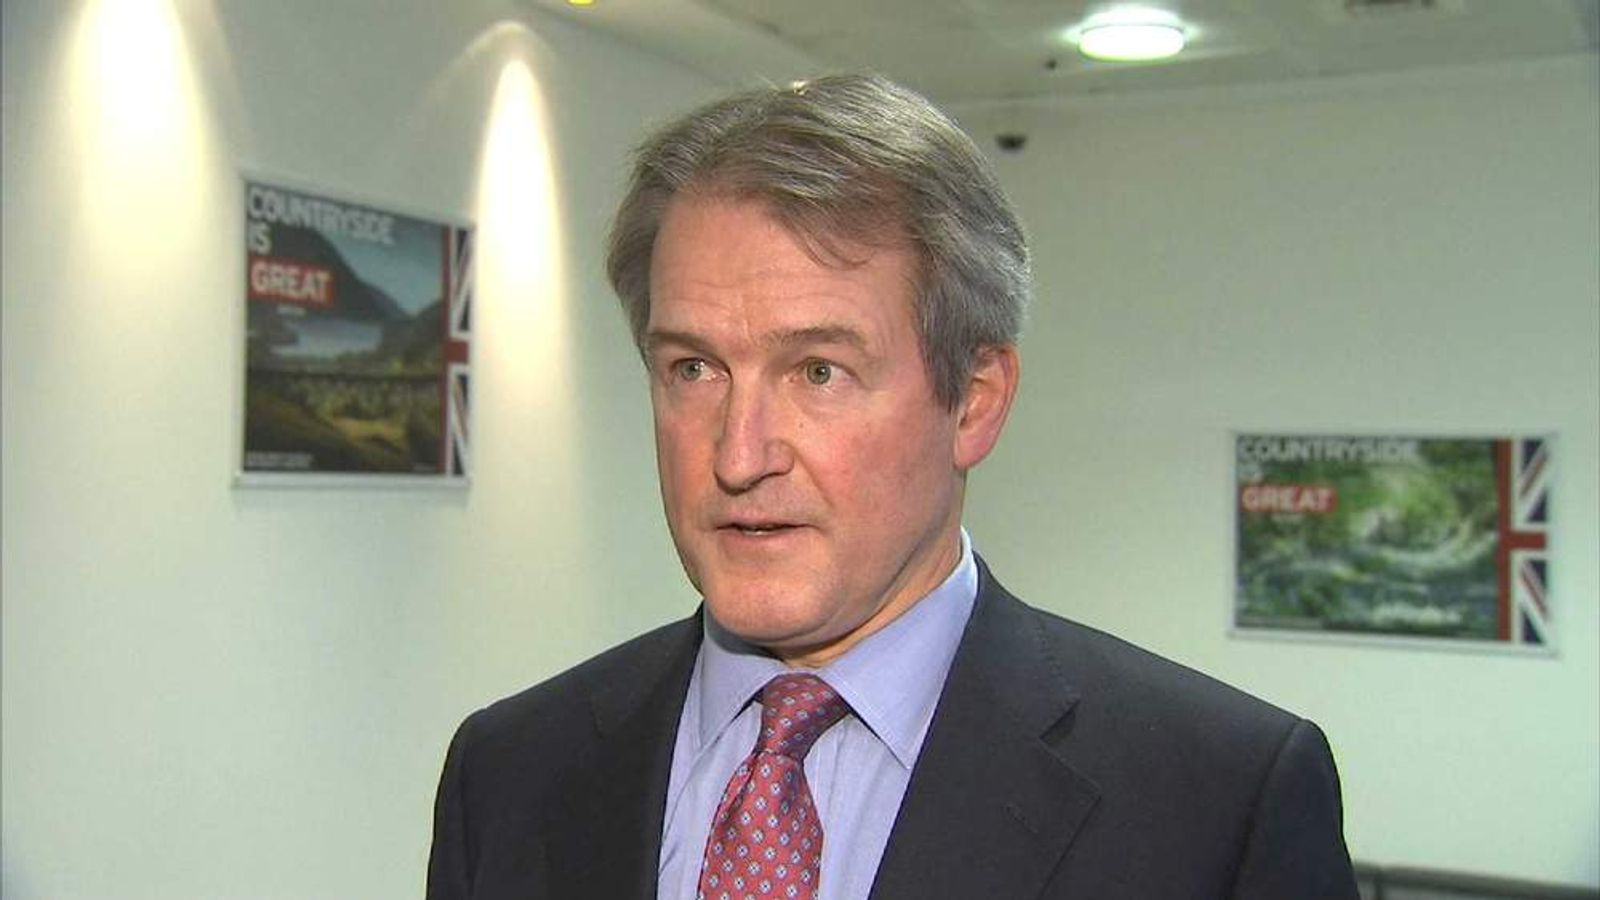 Environment Minister Owen Paterson